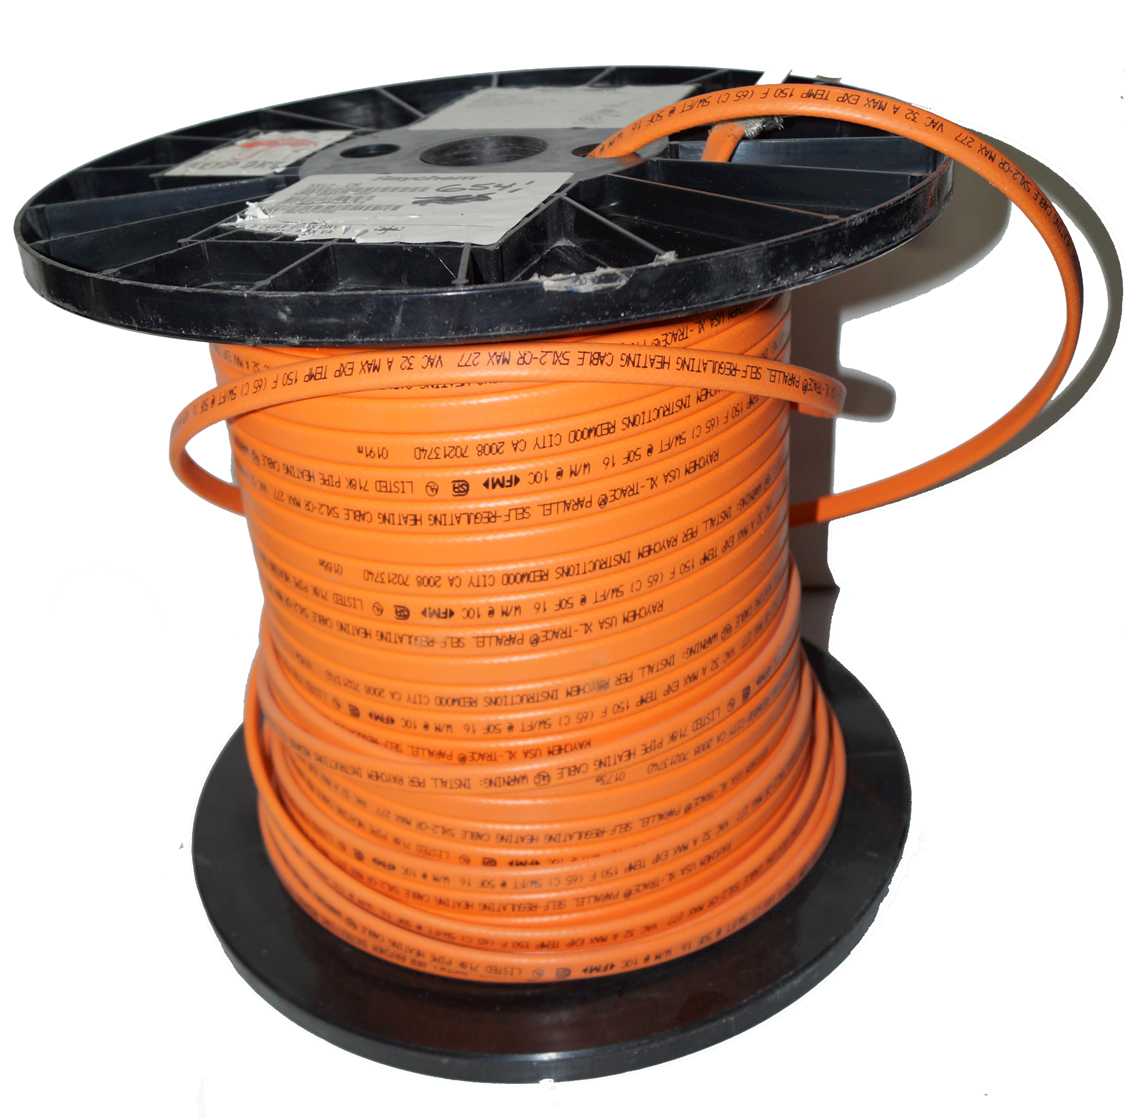 Raychem Pipe Heating Cable 5xl2 Cr